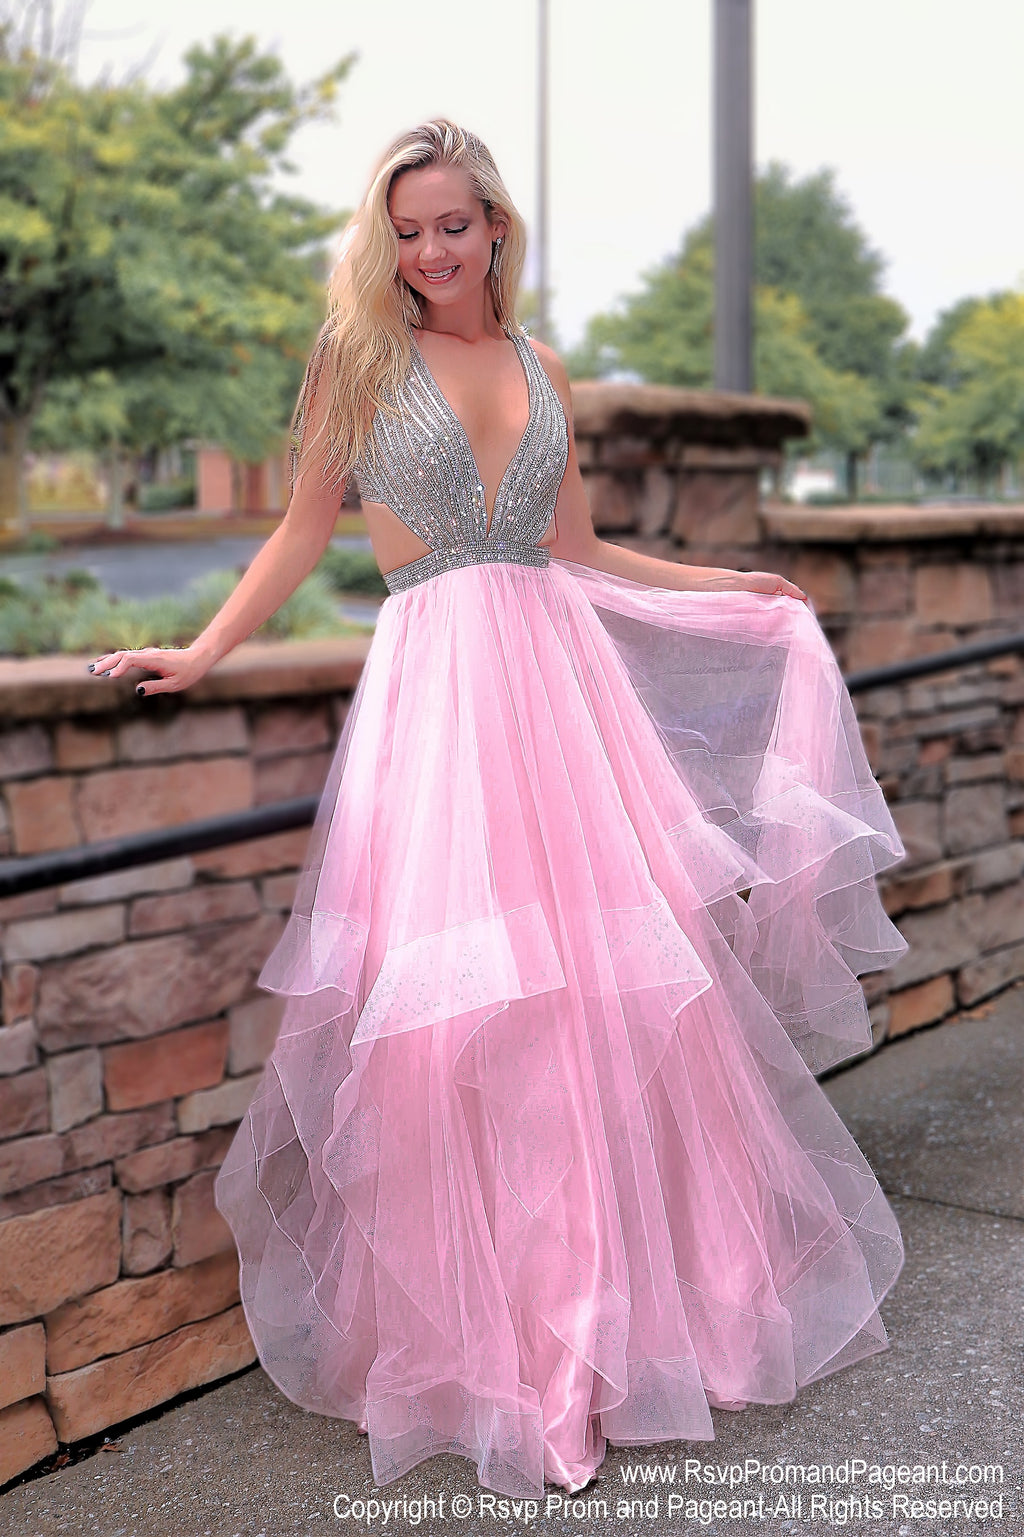 Blush V Neckline Open Back Ball Gown Prom Dress at Rsvp Prom and Pageant, the largest Atlanta prom dress store also known as promheaven